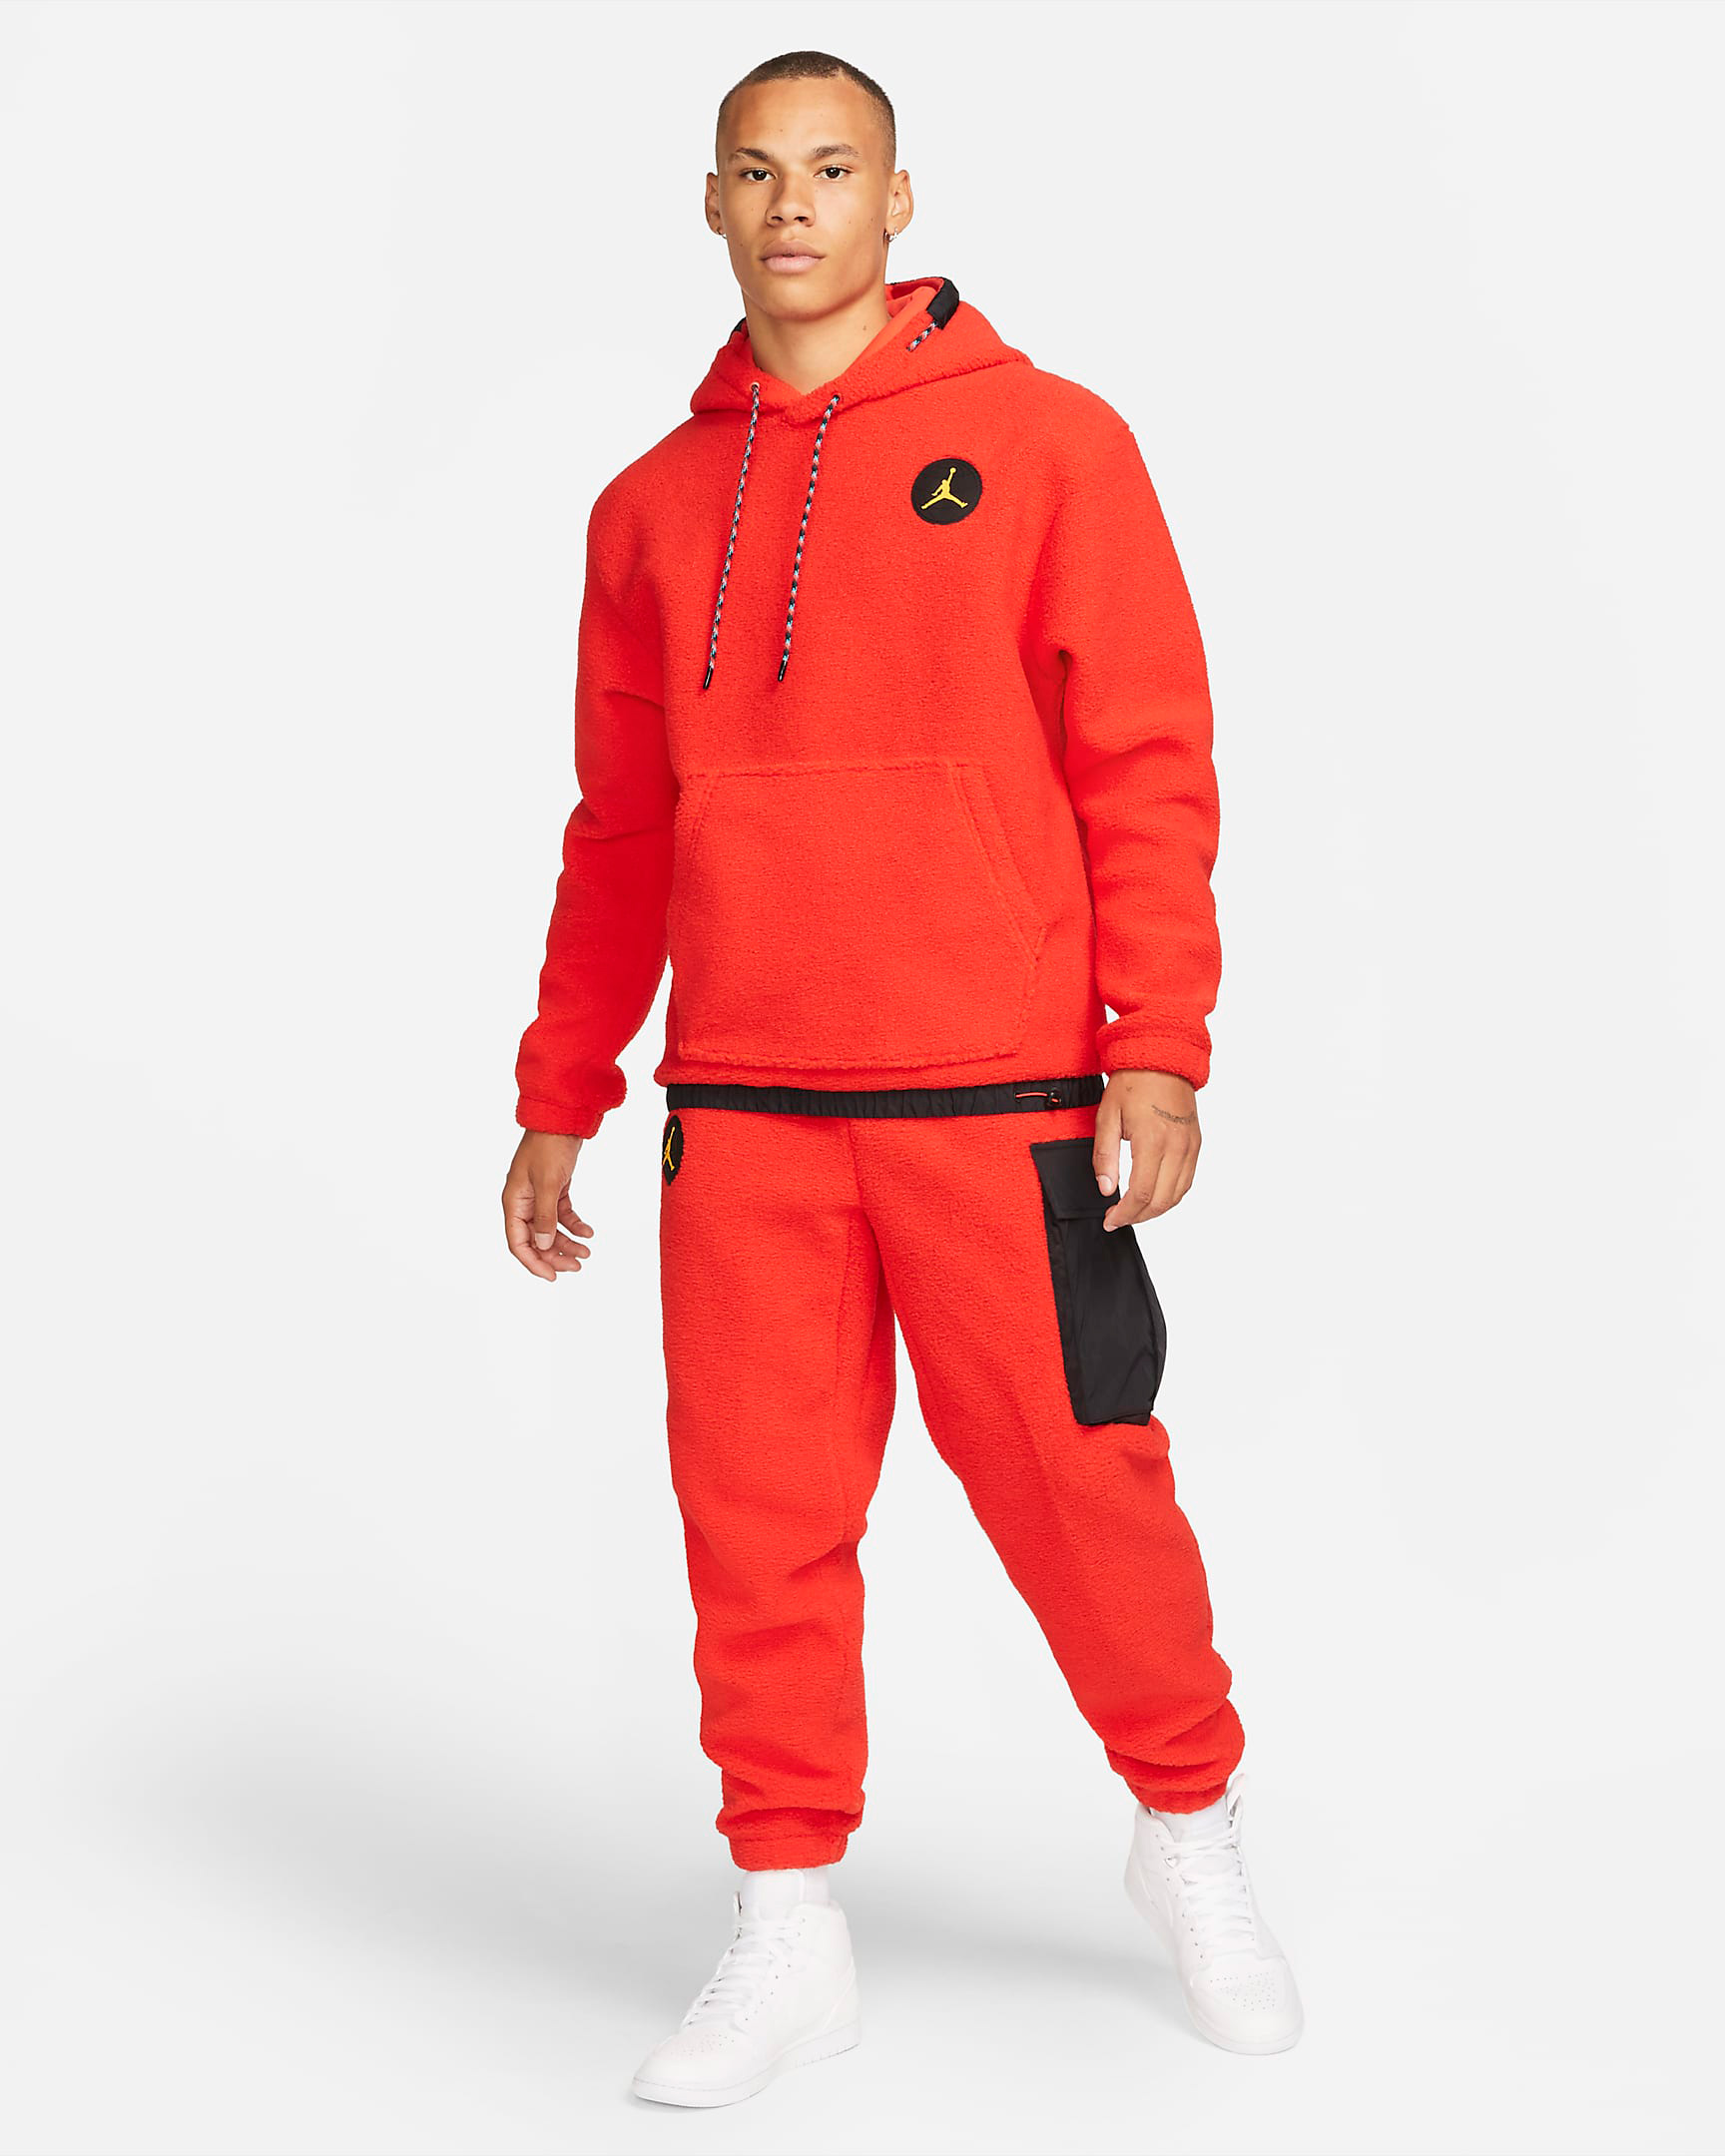 jordan-chile-red-mountainside-hoodie-pants-outfit